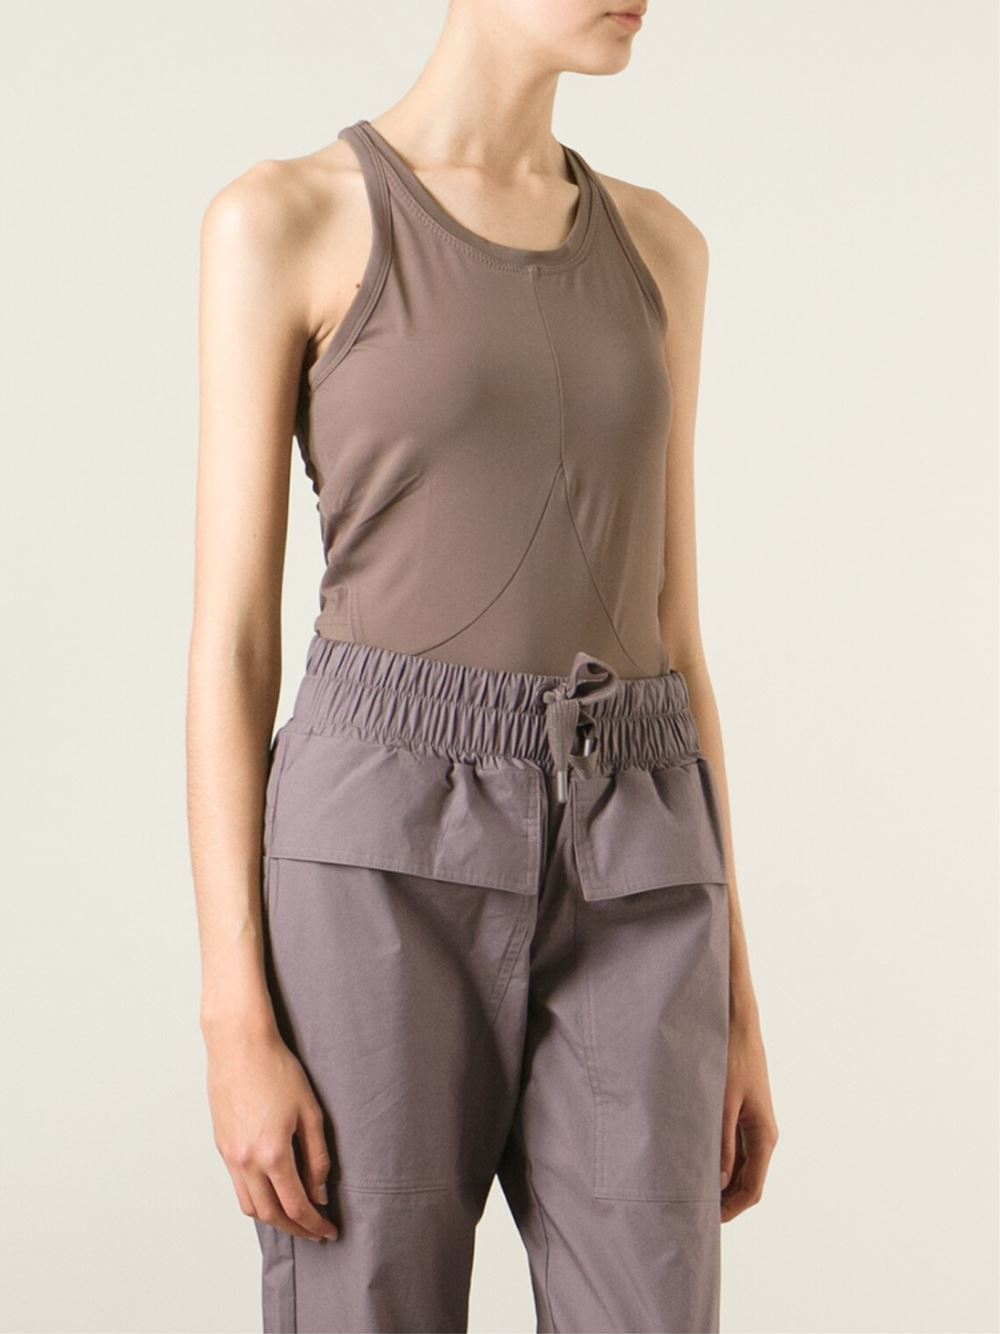 Nude sable tank top